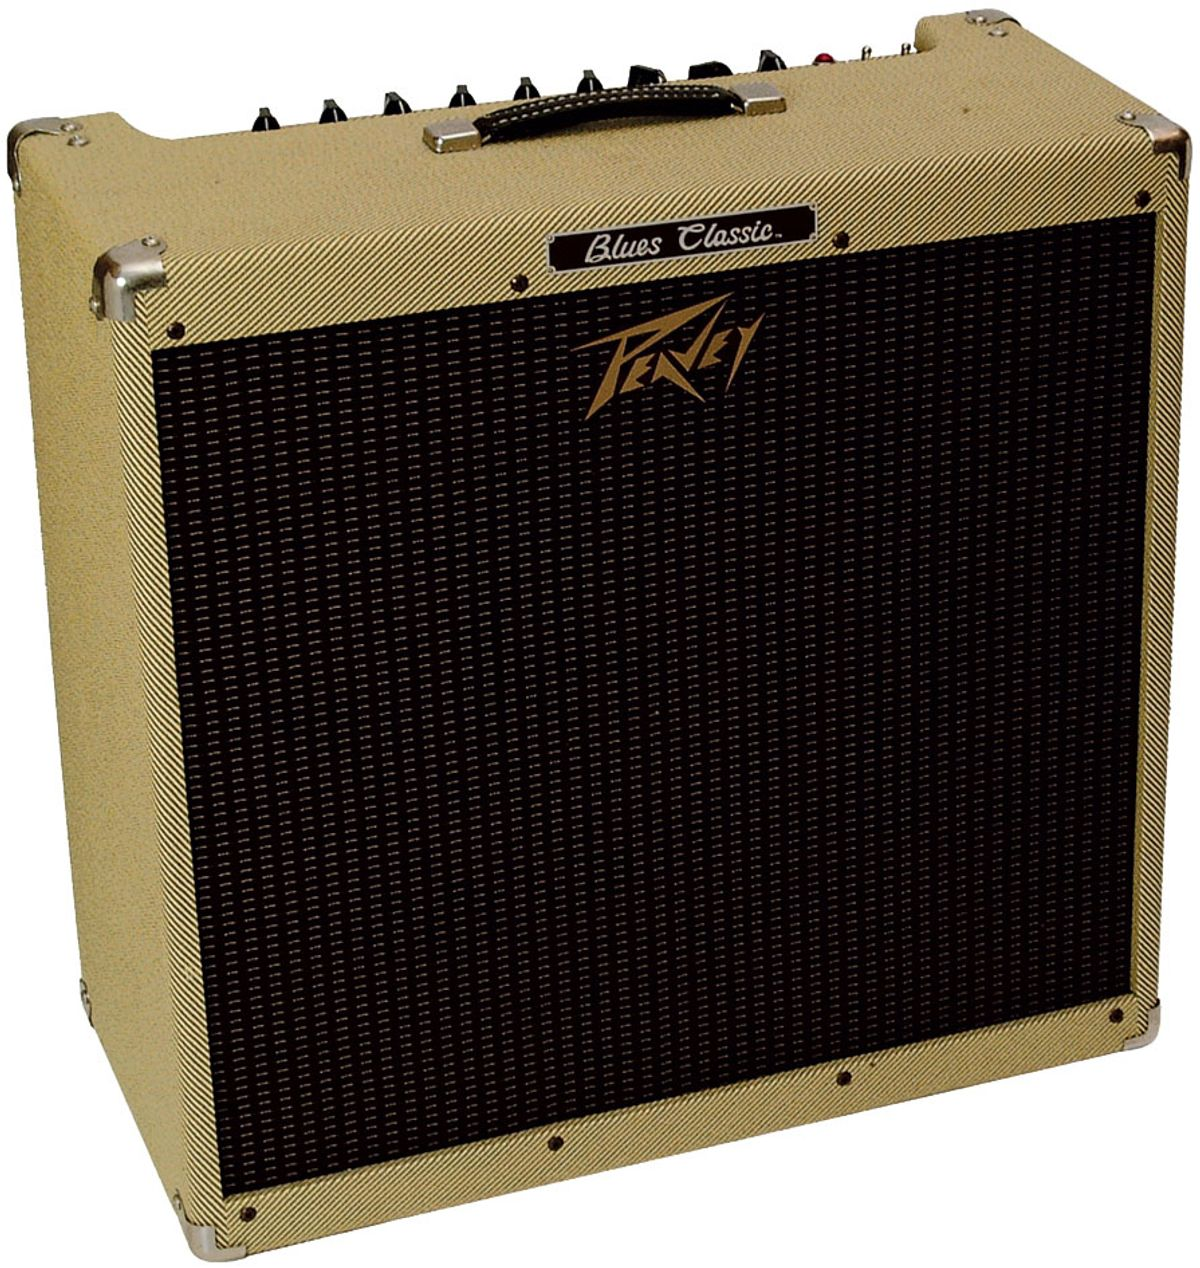 Trash or Treasure: Peavey Blues Classic